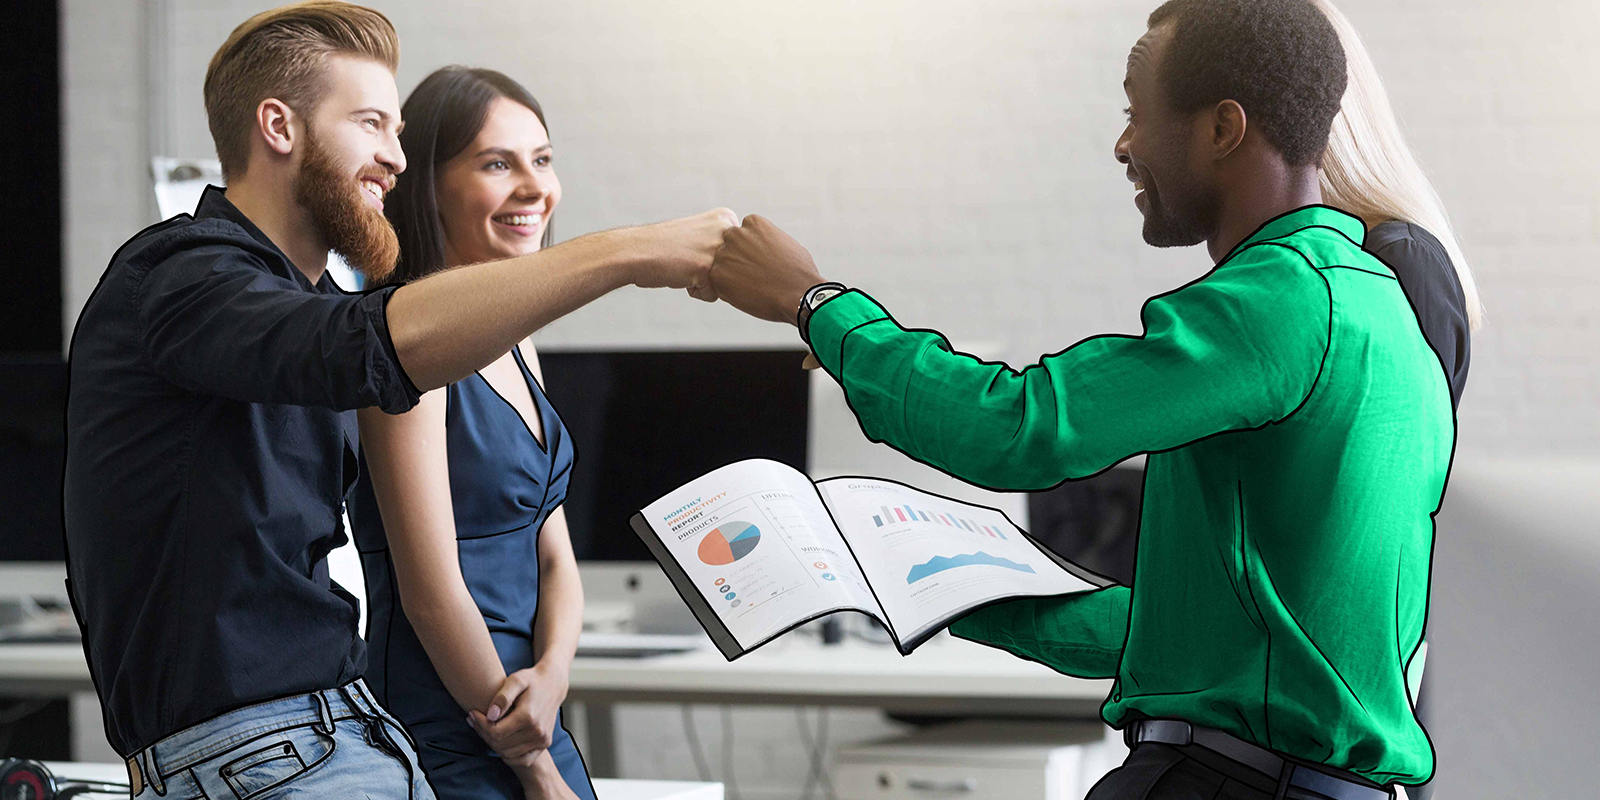 two marketers fist bumping over a marketing report